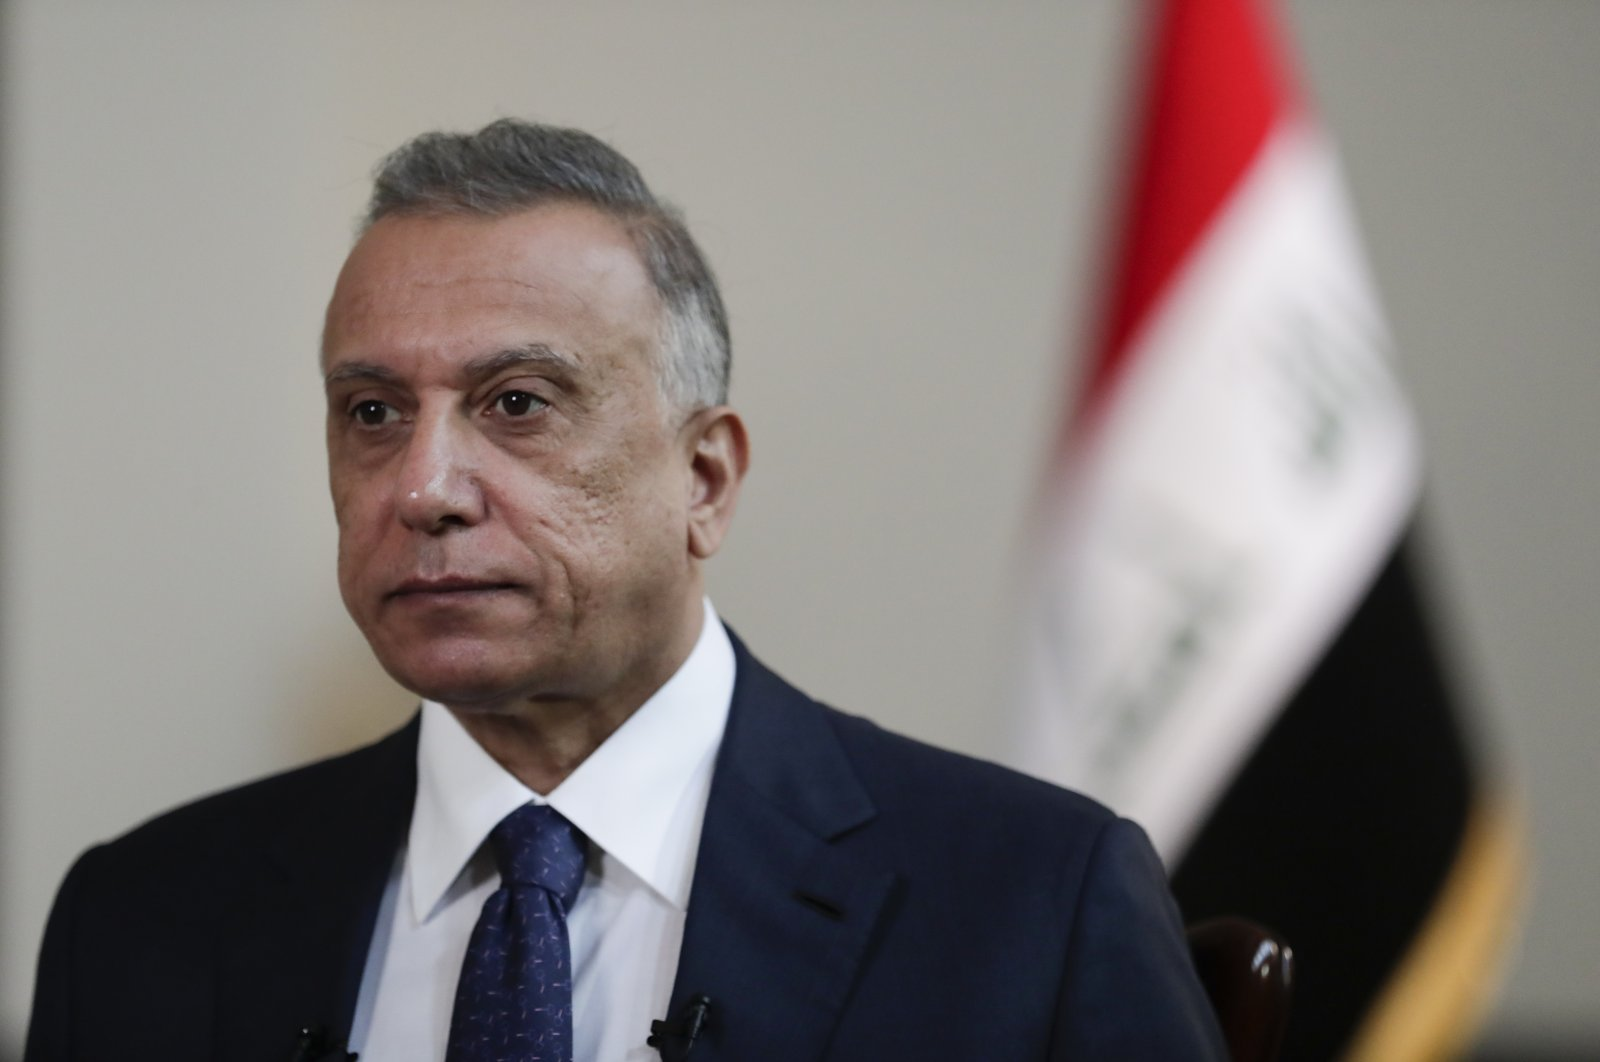 Iraqi Prime Minister Mustafa al-Kadhimi poses in his office during an interview in Baghdad, Iraq, July 23, 2021. (AP Photo)